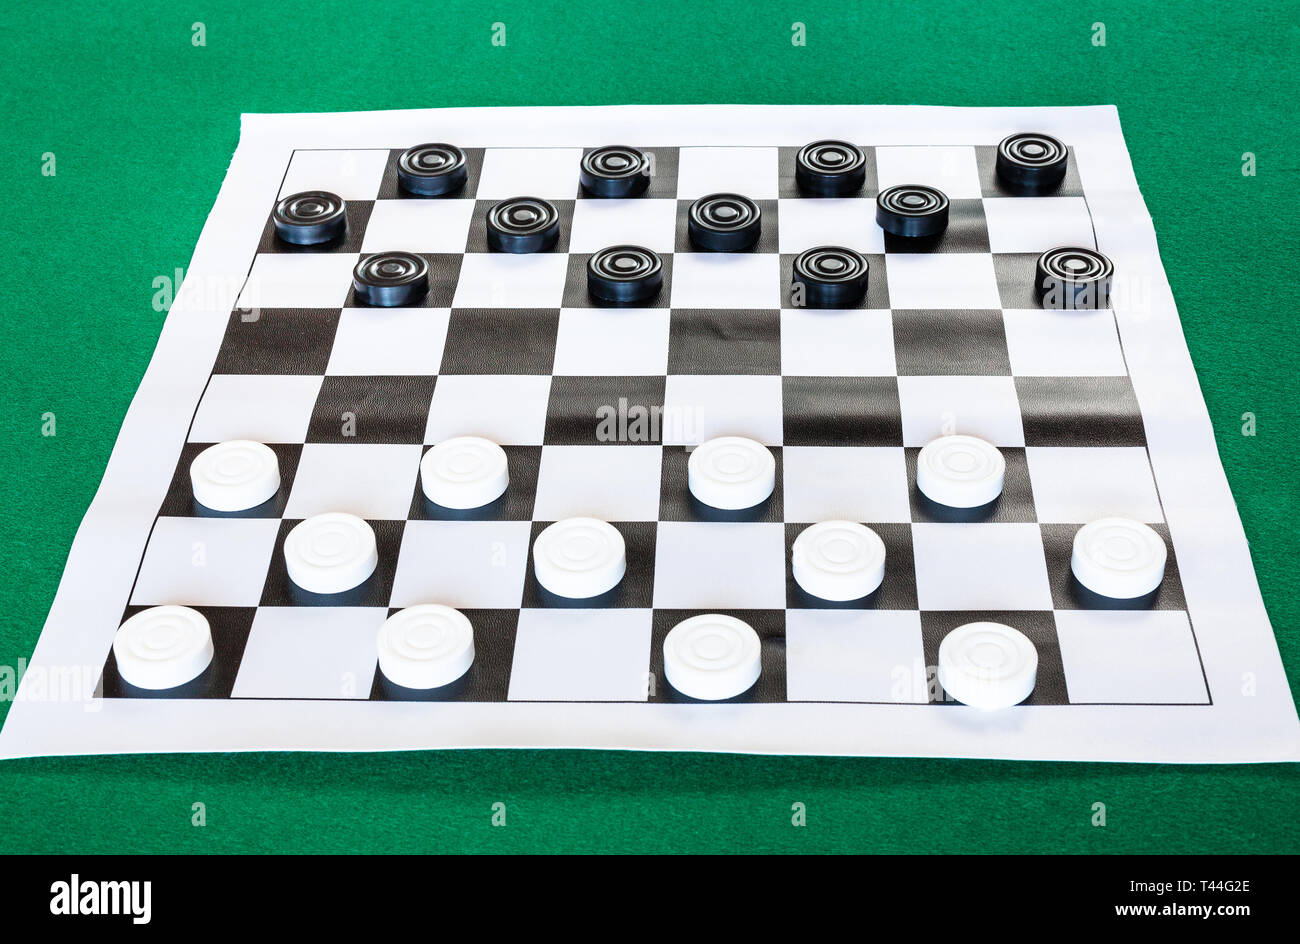 Draughts On Black And White Checkered Sheet Board On Green Baize